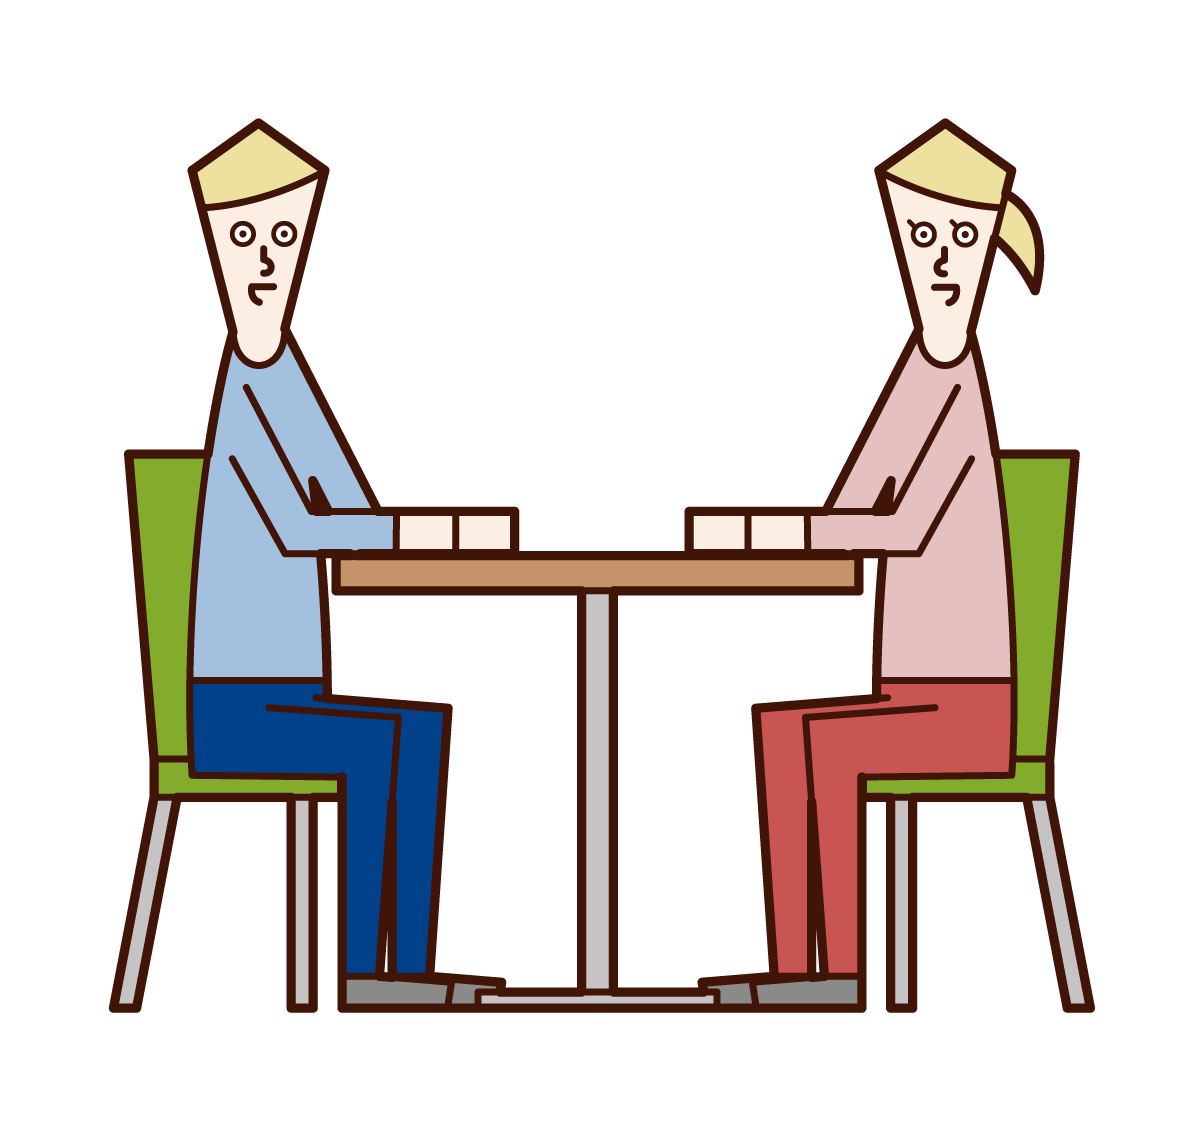 Illustrations of dialogues, dialogues, and meetings